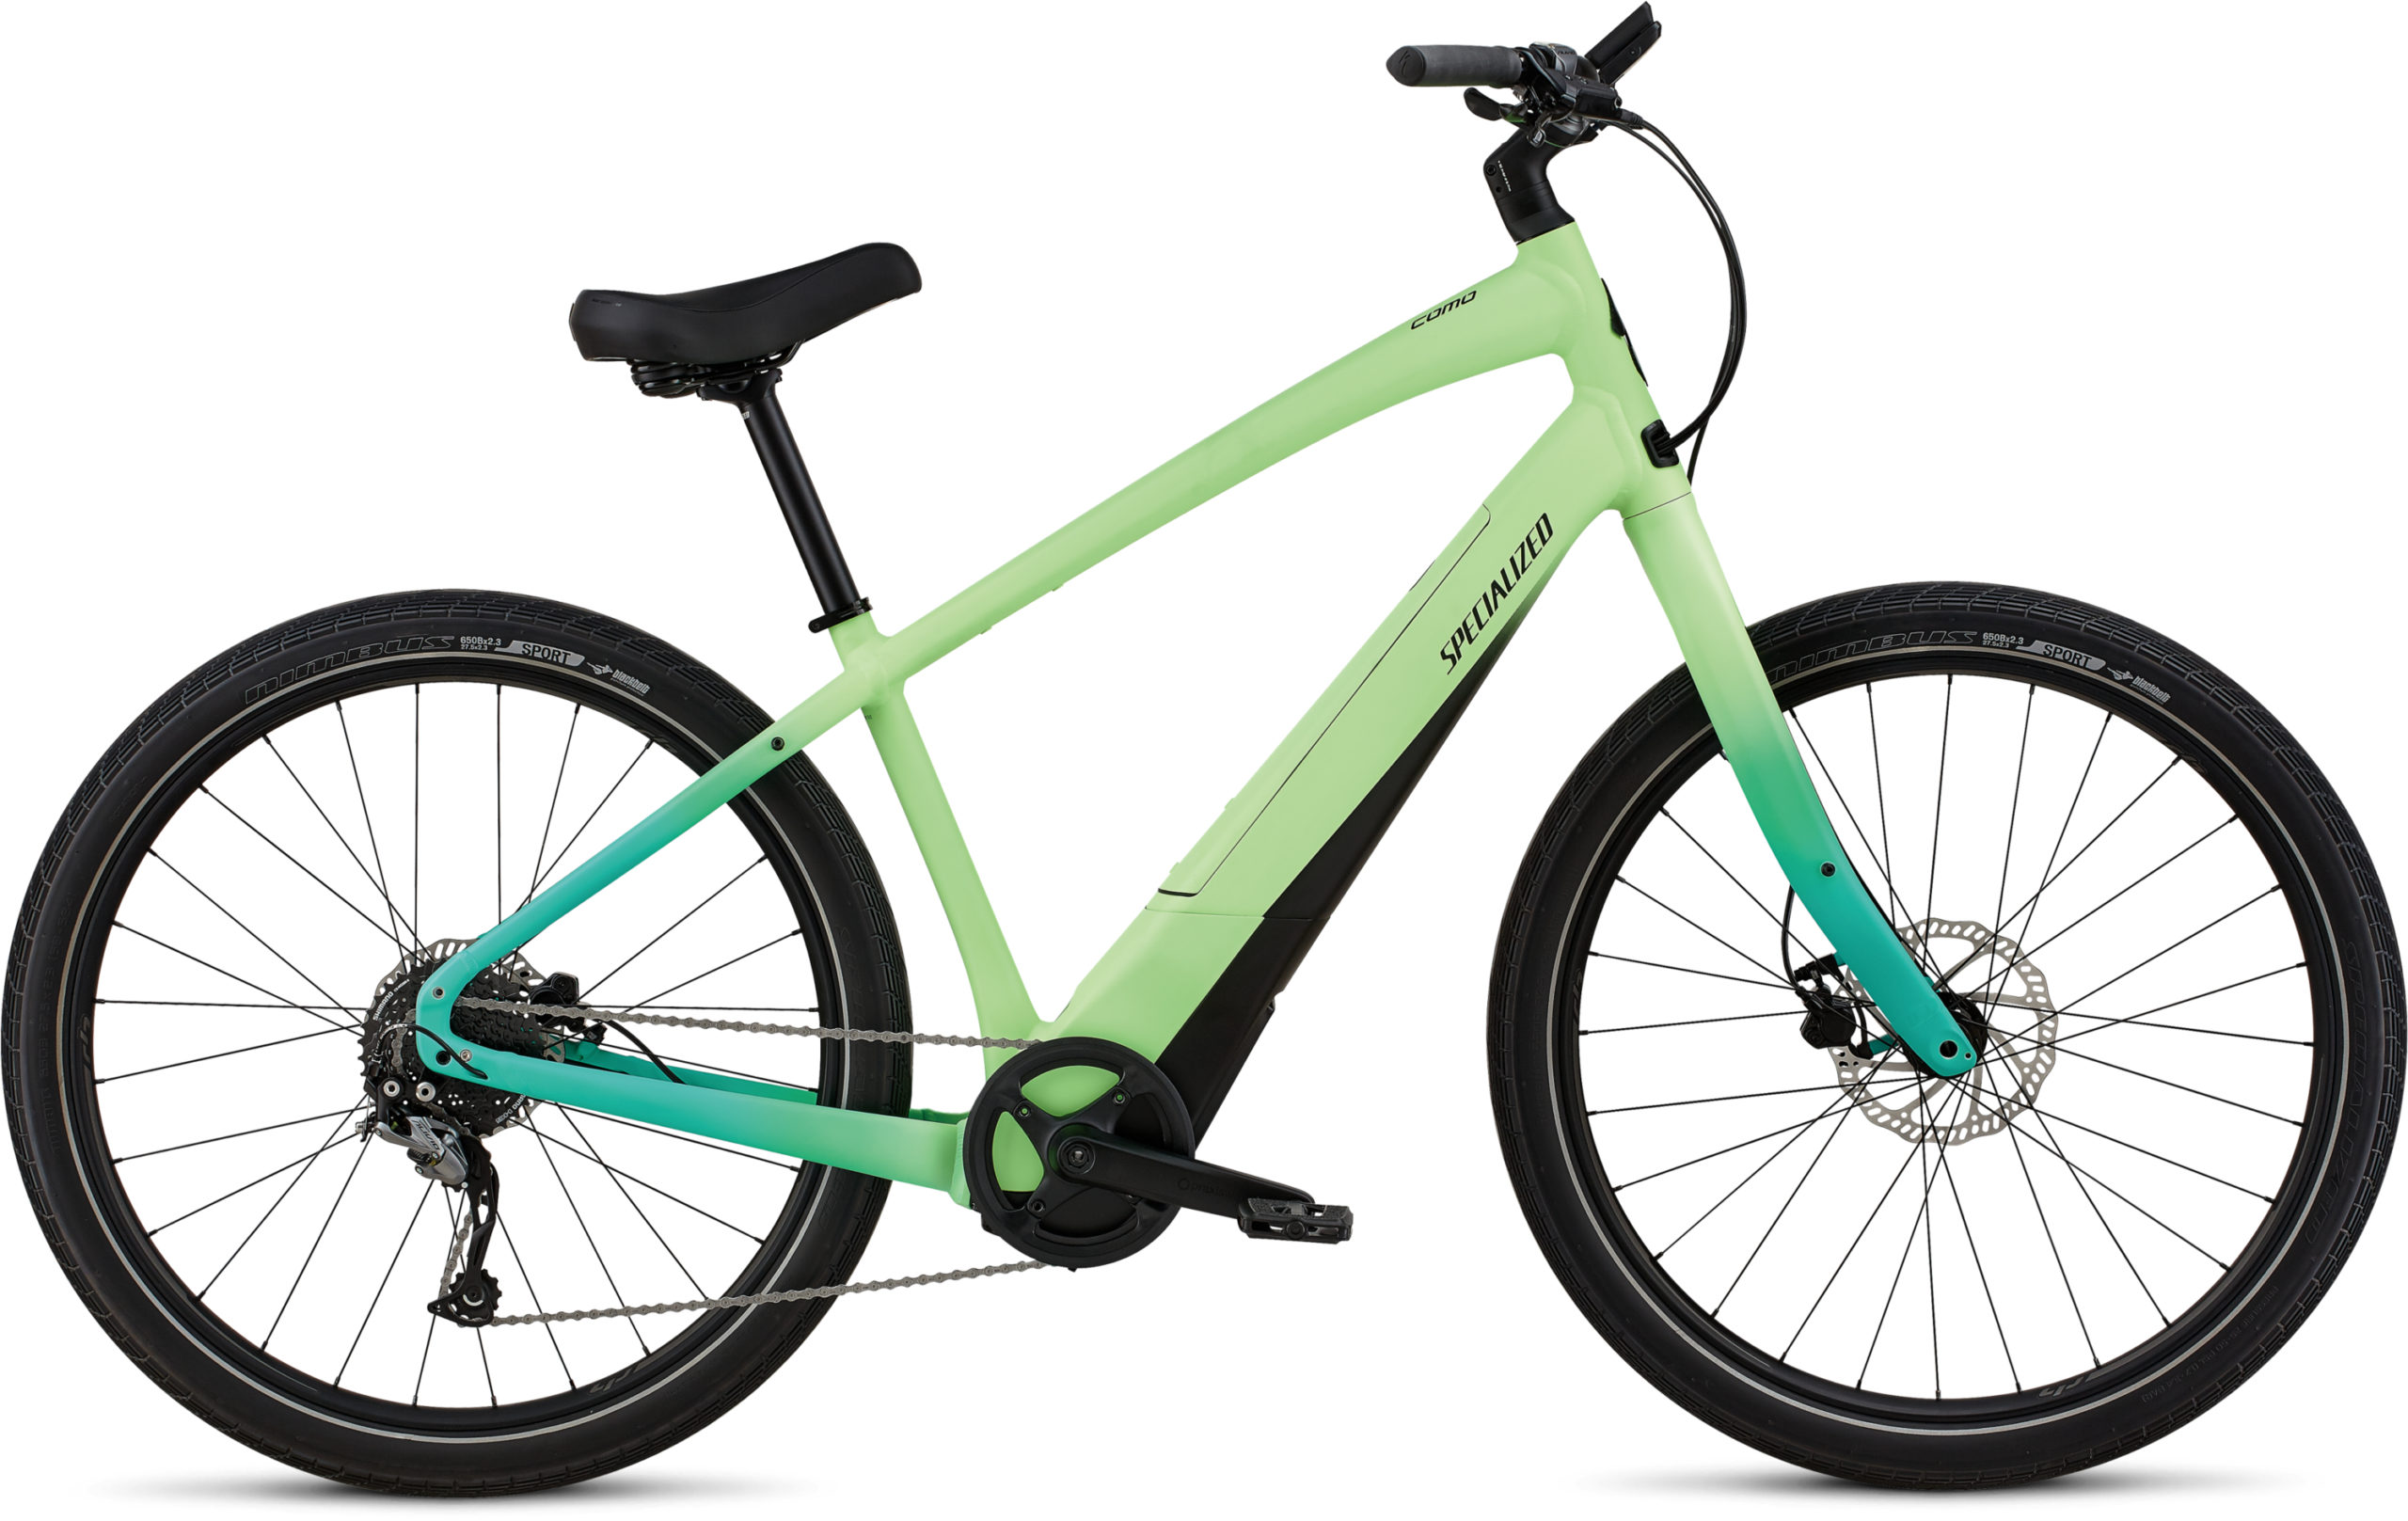 e-Bikes Available for Curbside Loan and Test Rides